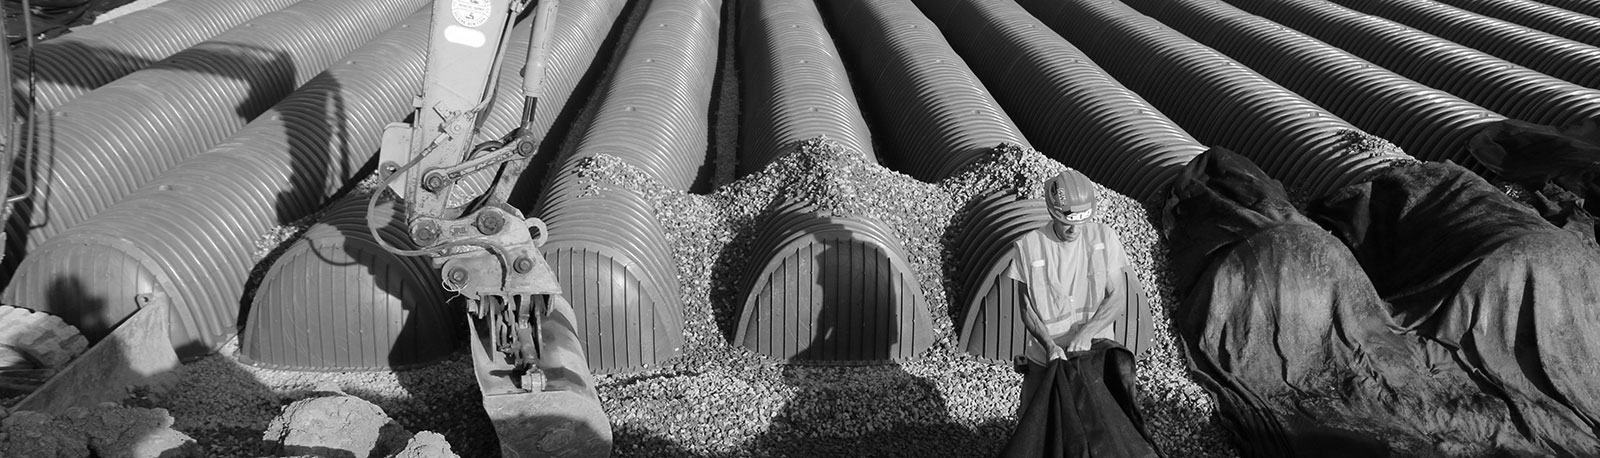 Man in hard hat stands in front of large pipes in ground - black and white